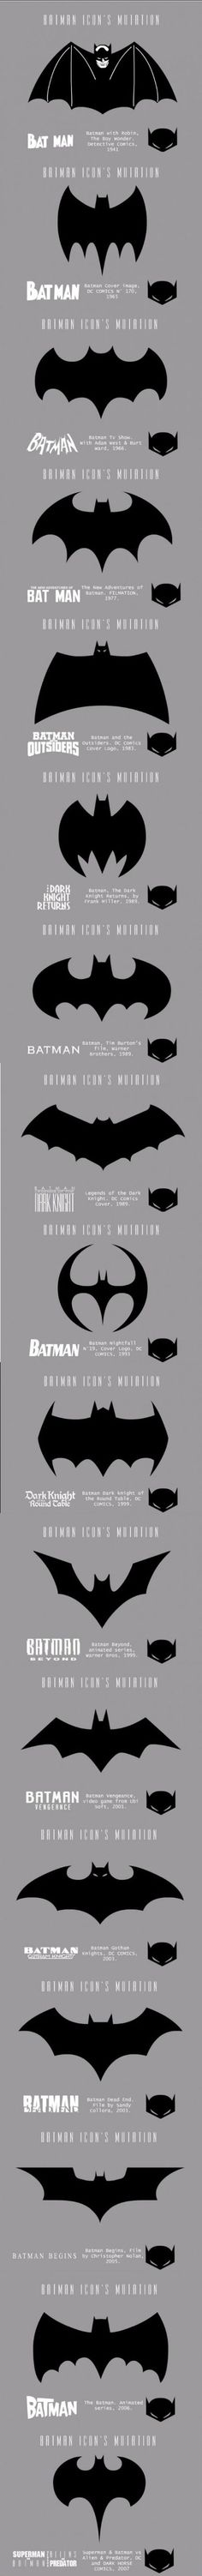 Evolution of the Batman Symbol